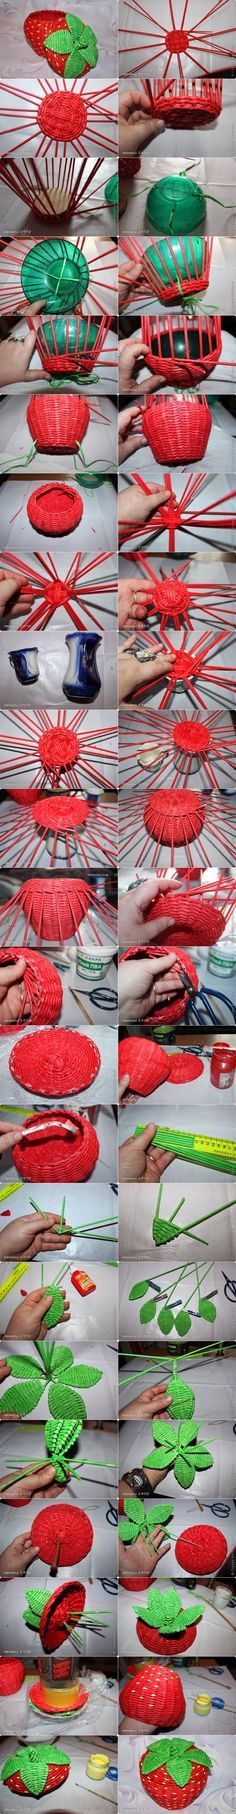 strawberry basket tutorial